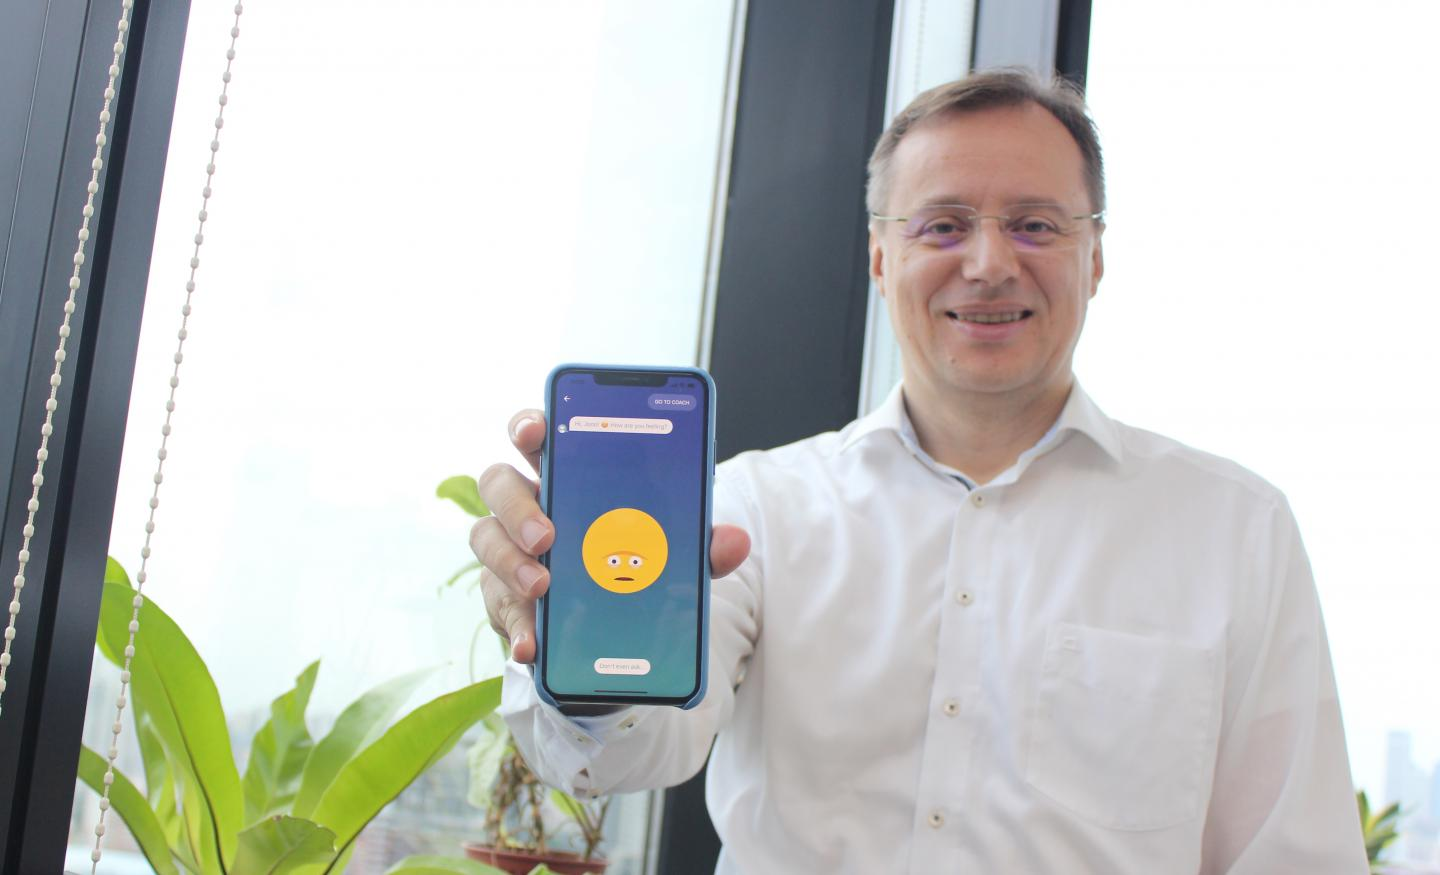 Only 1 in 10 Suicide Prevention Apps Cover All the Recommended Strategies, NTU Singapore Study Finds